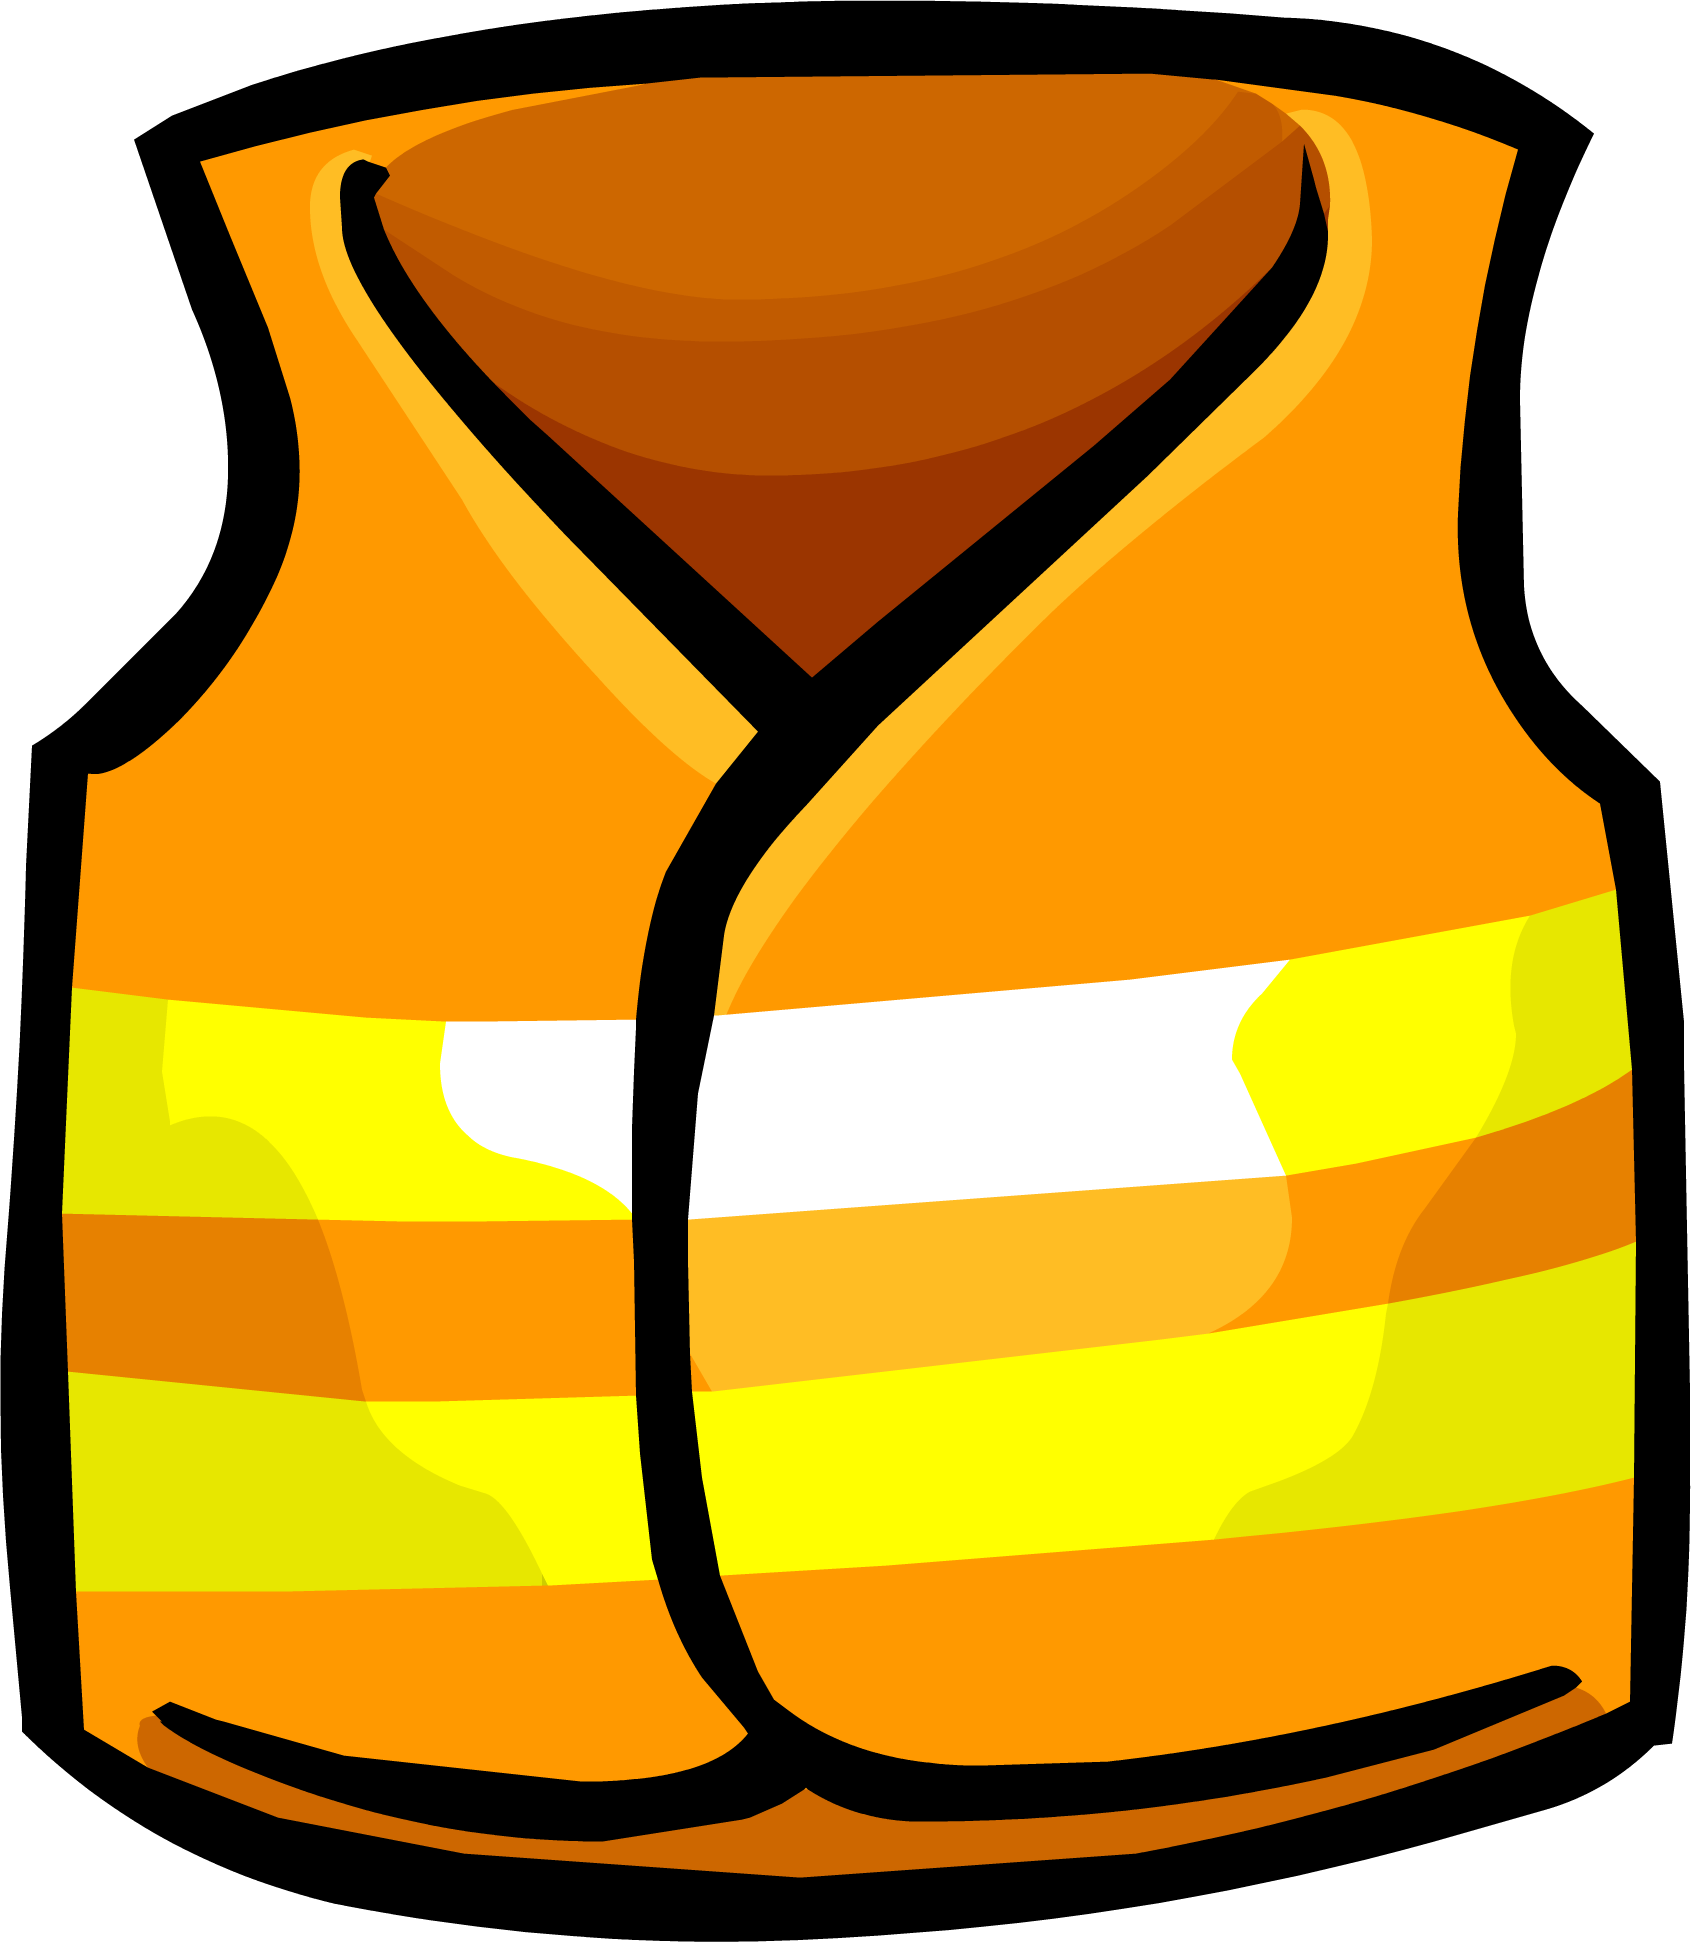 Image vest clothing icon. Blizzard clipart safety